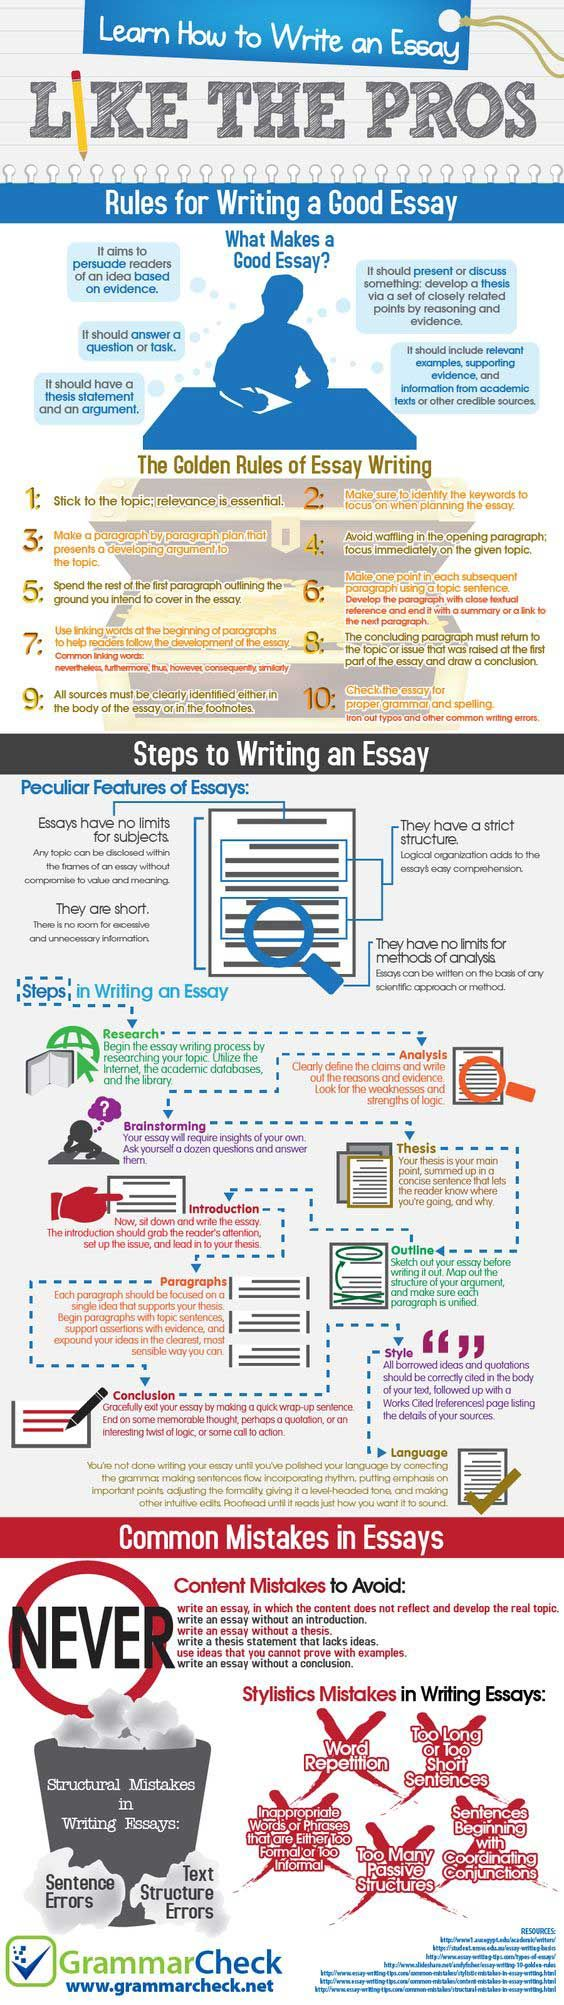 Wikipedia Ten Simple Rules for Editing Wikipedia   Wikipedia Essay On Importance Of Technical Education tinnitusclear com  Essay On Importance Of Technical Education tinnitusclear com